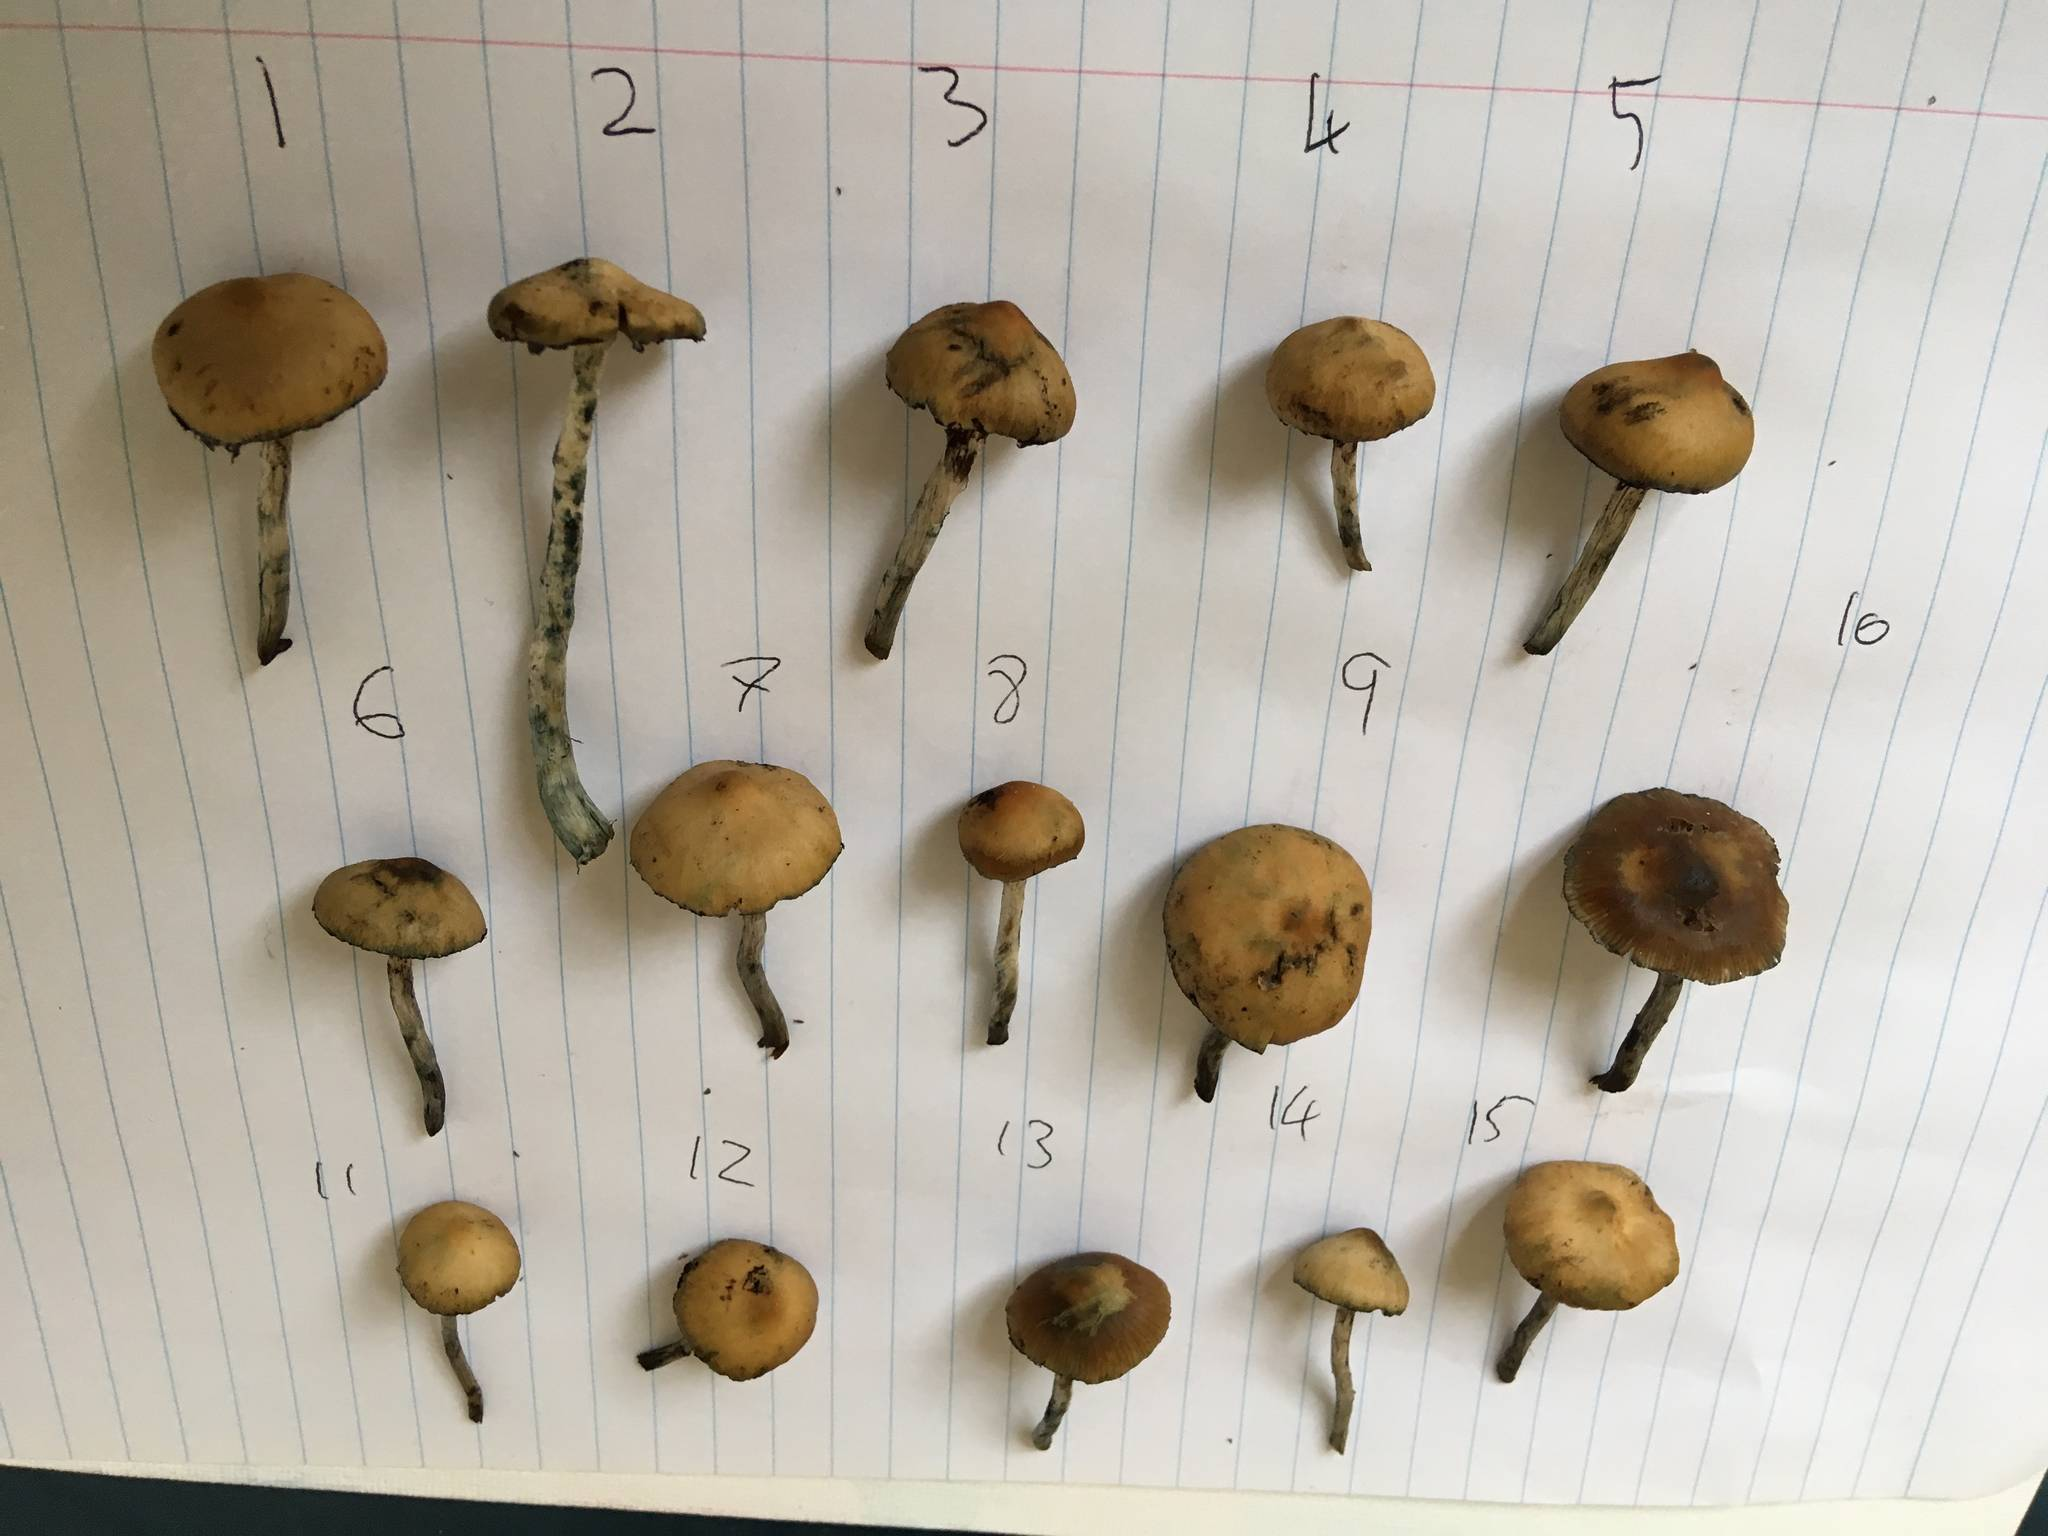 subs id second opinion please canberra - Mushroom Hunting and